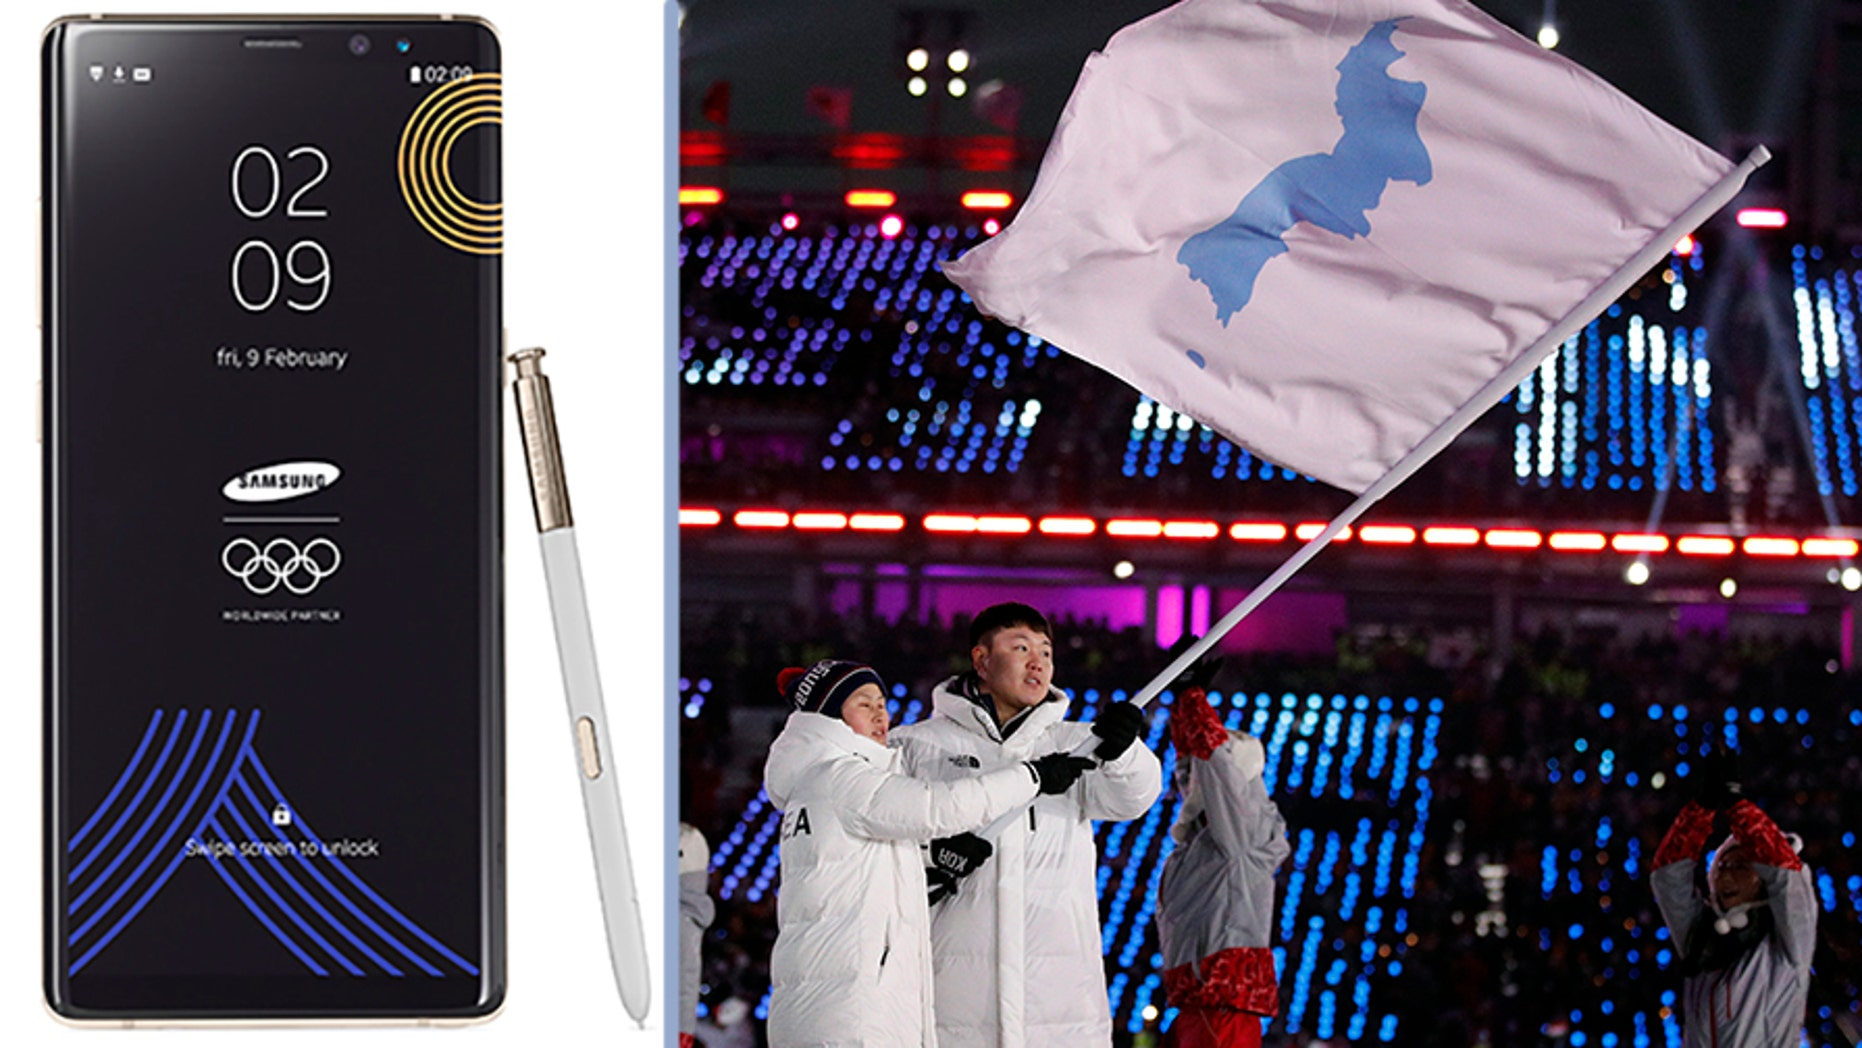 Samsung Electronics donated the limited edition phones for athletes and officials at the International Olympic Committee so that they can document every moment and share their memories with the world. The Winter Olympic Games organizer is in limbo whether handing out the device to North Koreans and Iranians would violate global sanctions.